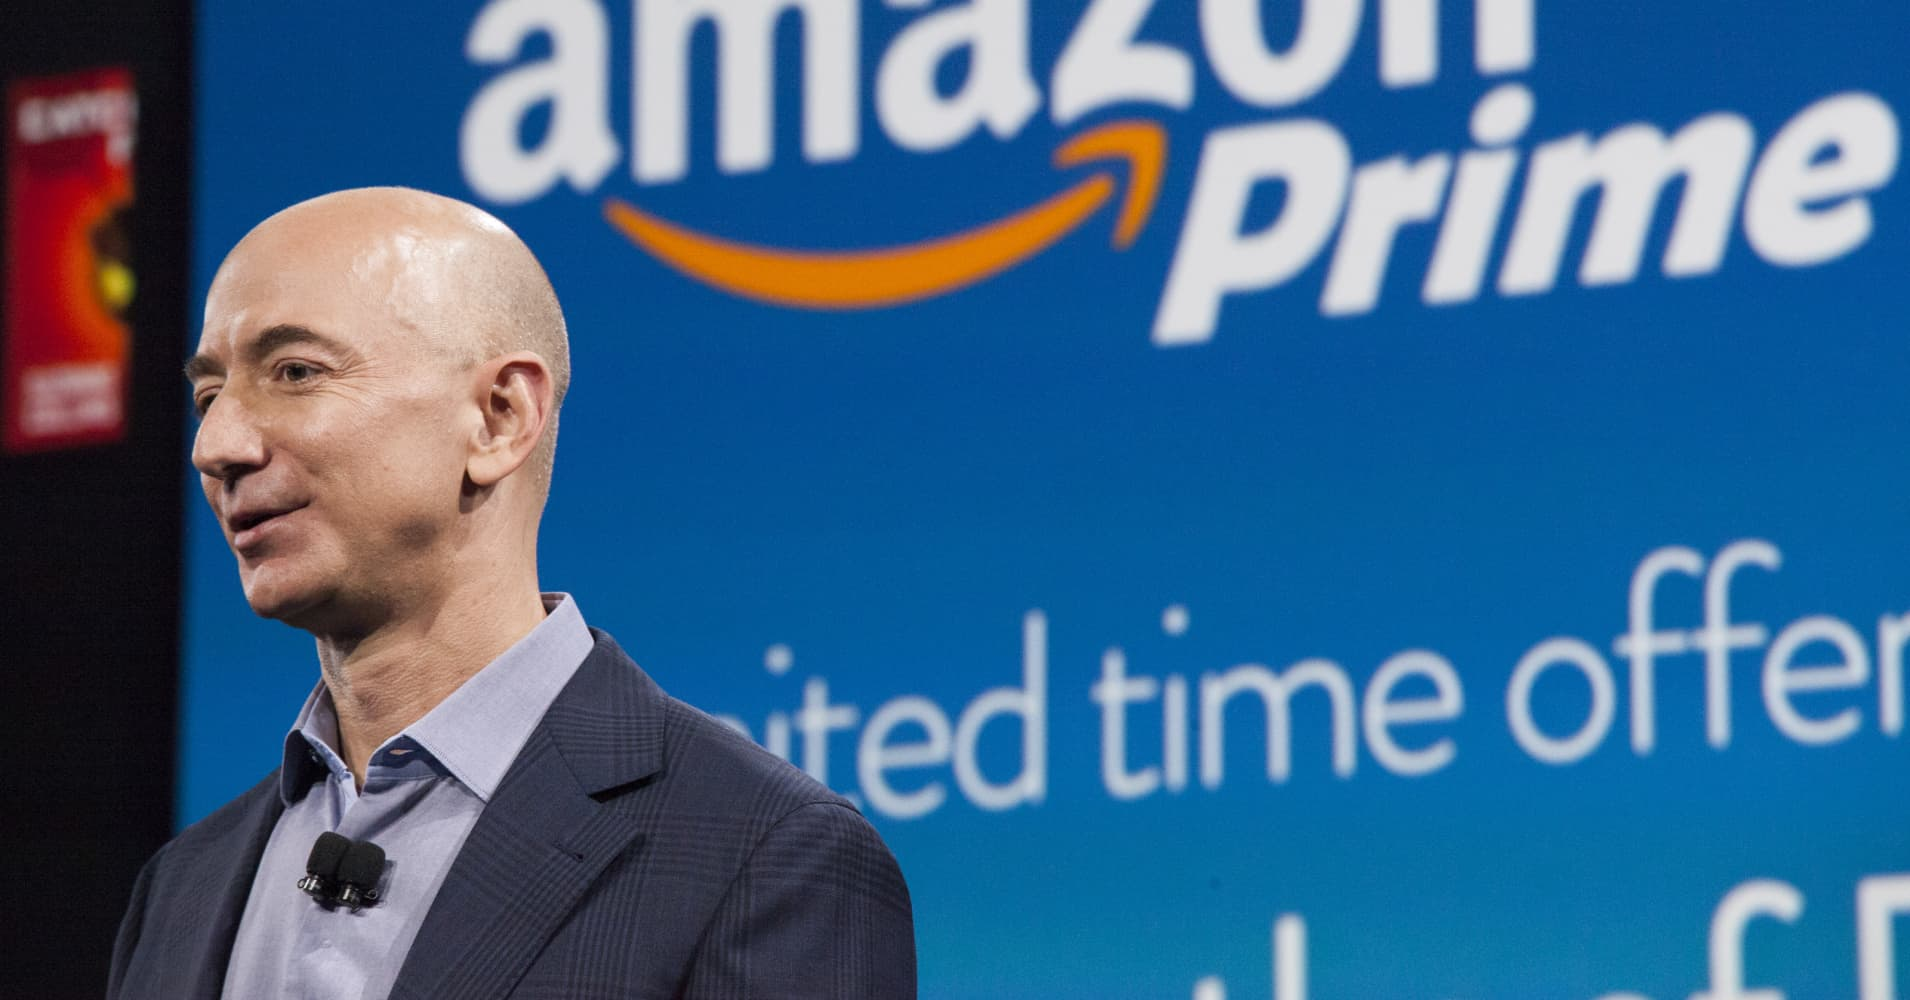 Jeff Bezos is now worth $100 billion